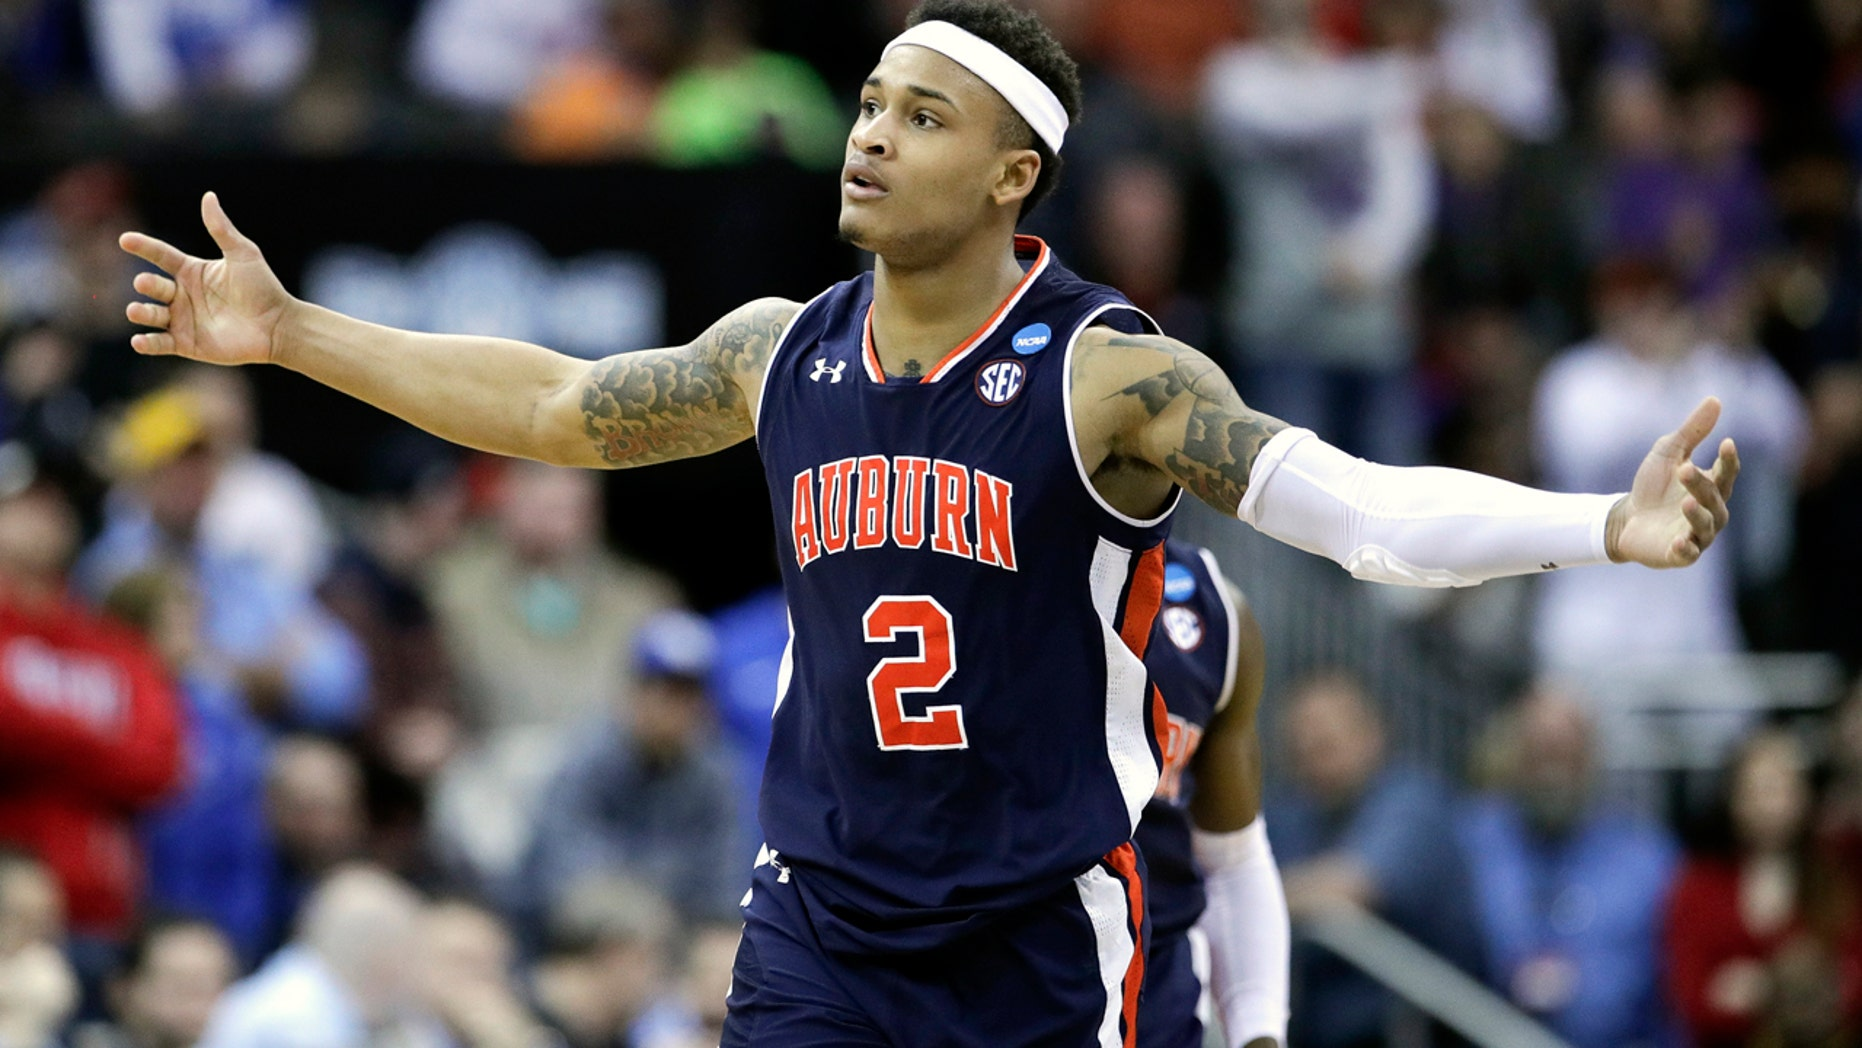 Bryce Brown was Auburn's joint top scorer in the overtime win with 24 points. (AP Photo/Charlie Riedel)